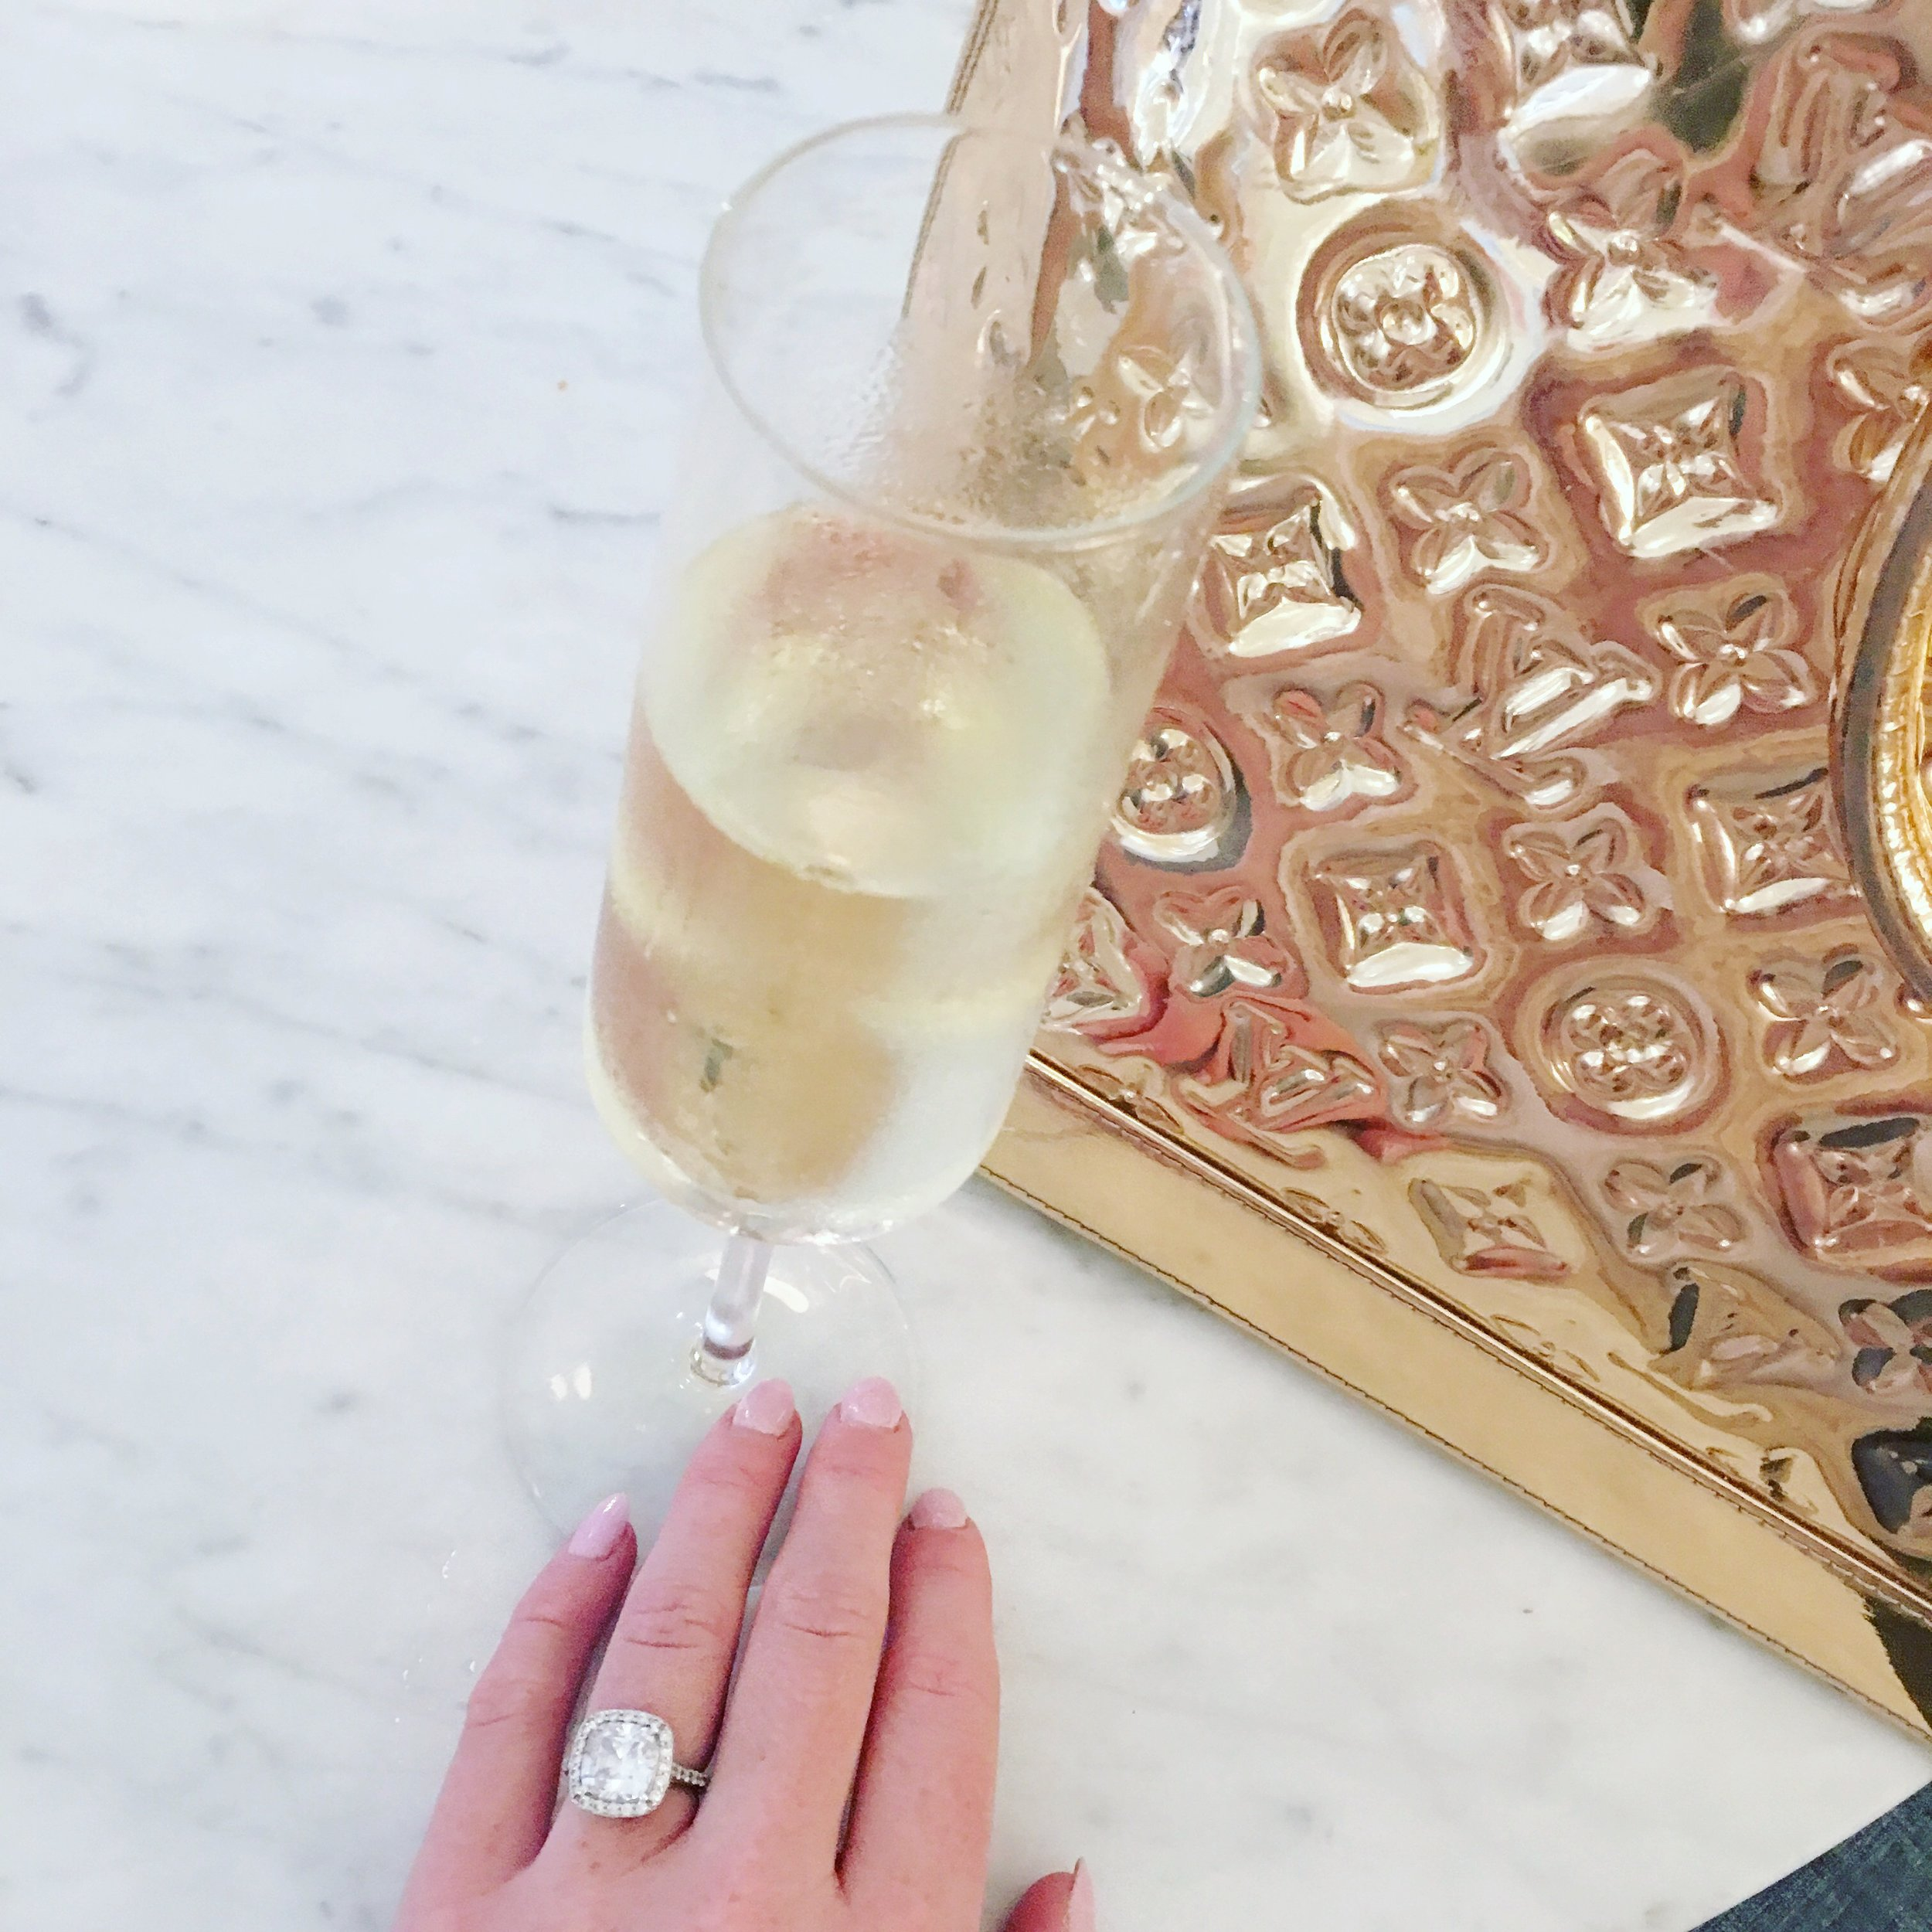 Champagne Is Always The Answer®, especially at Quirk!